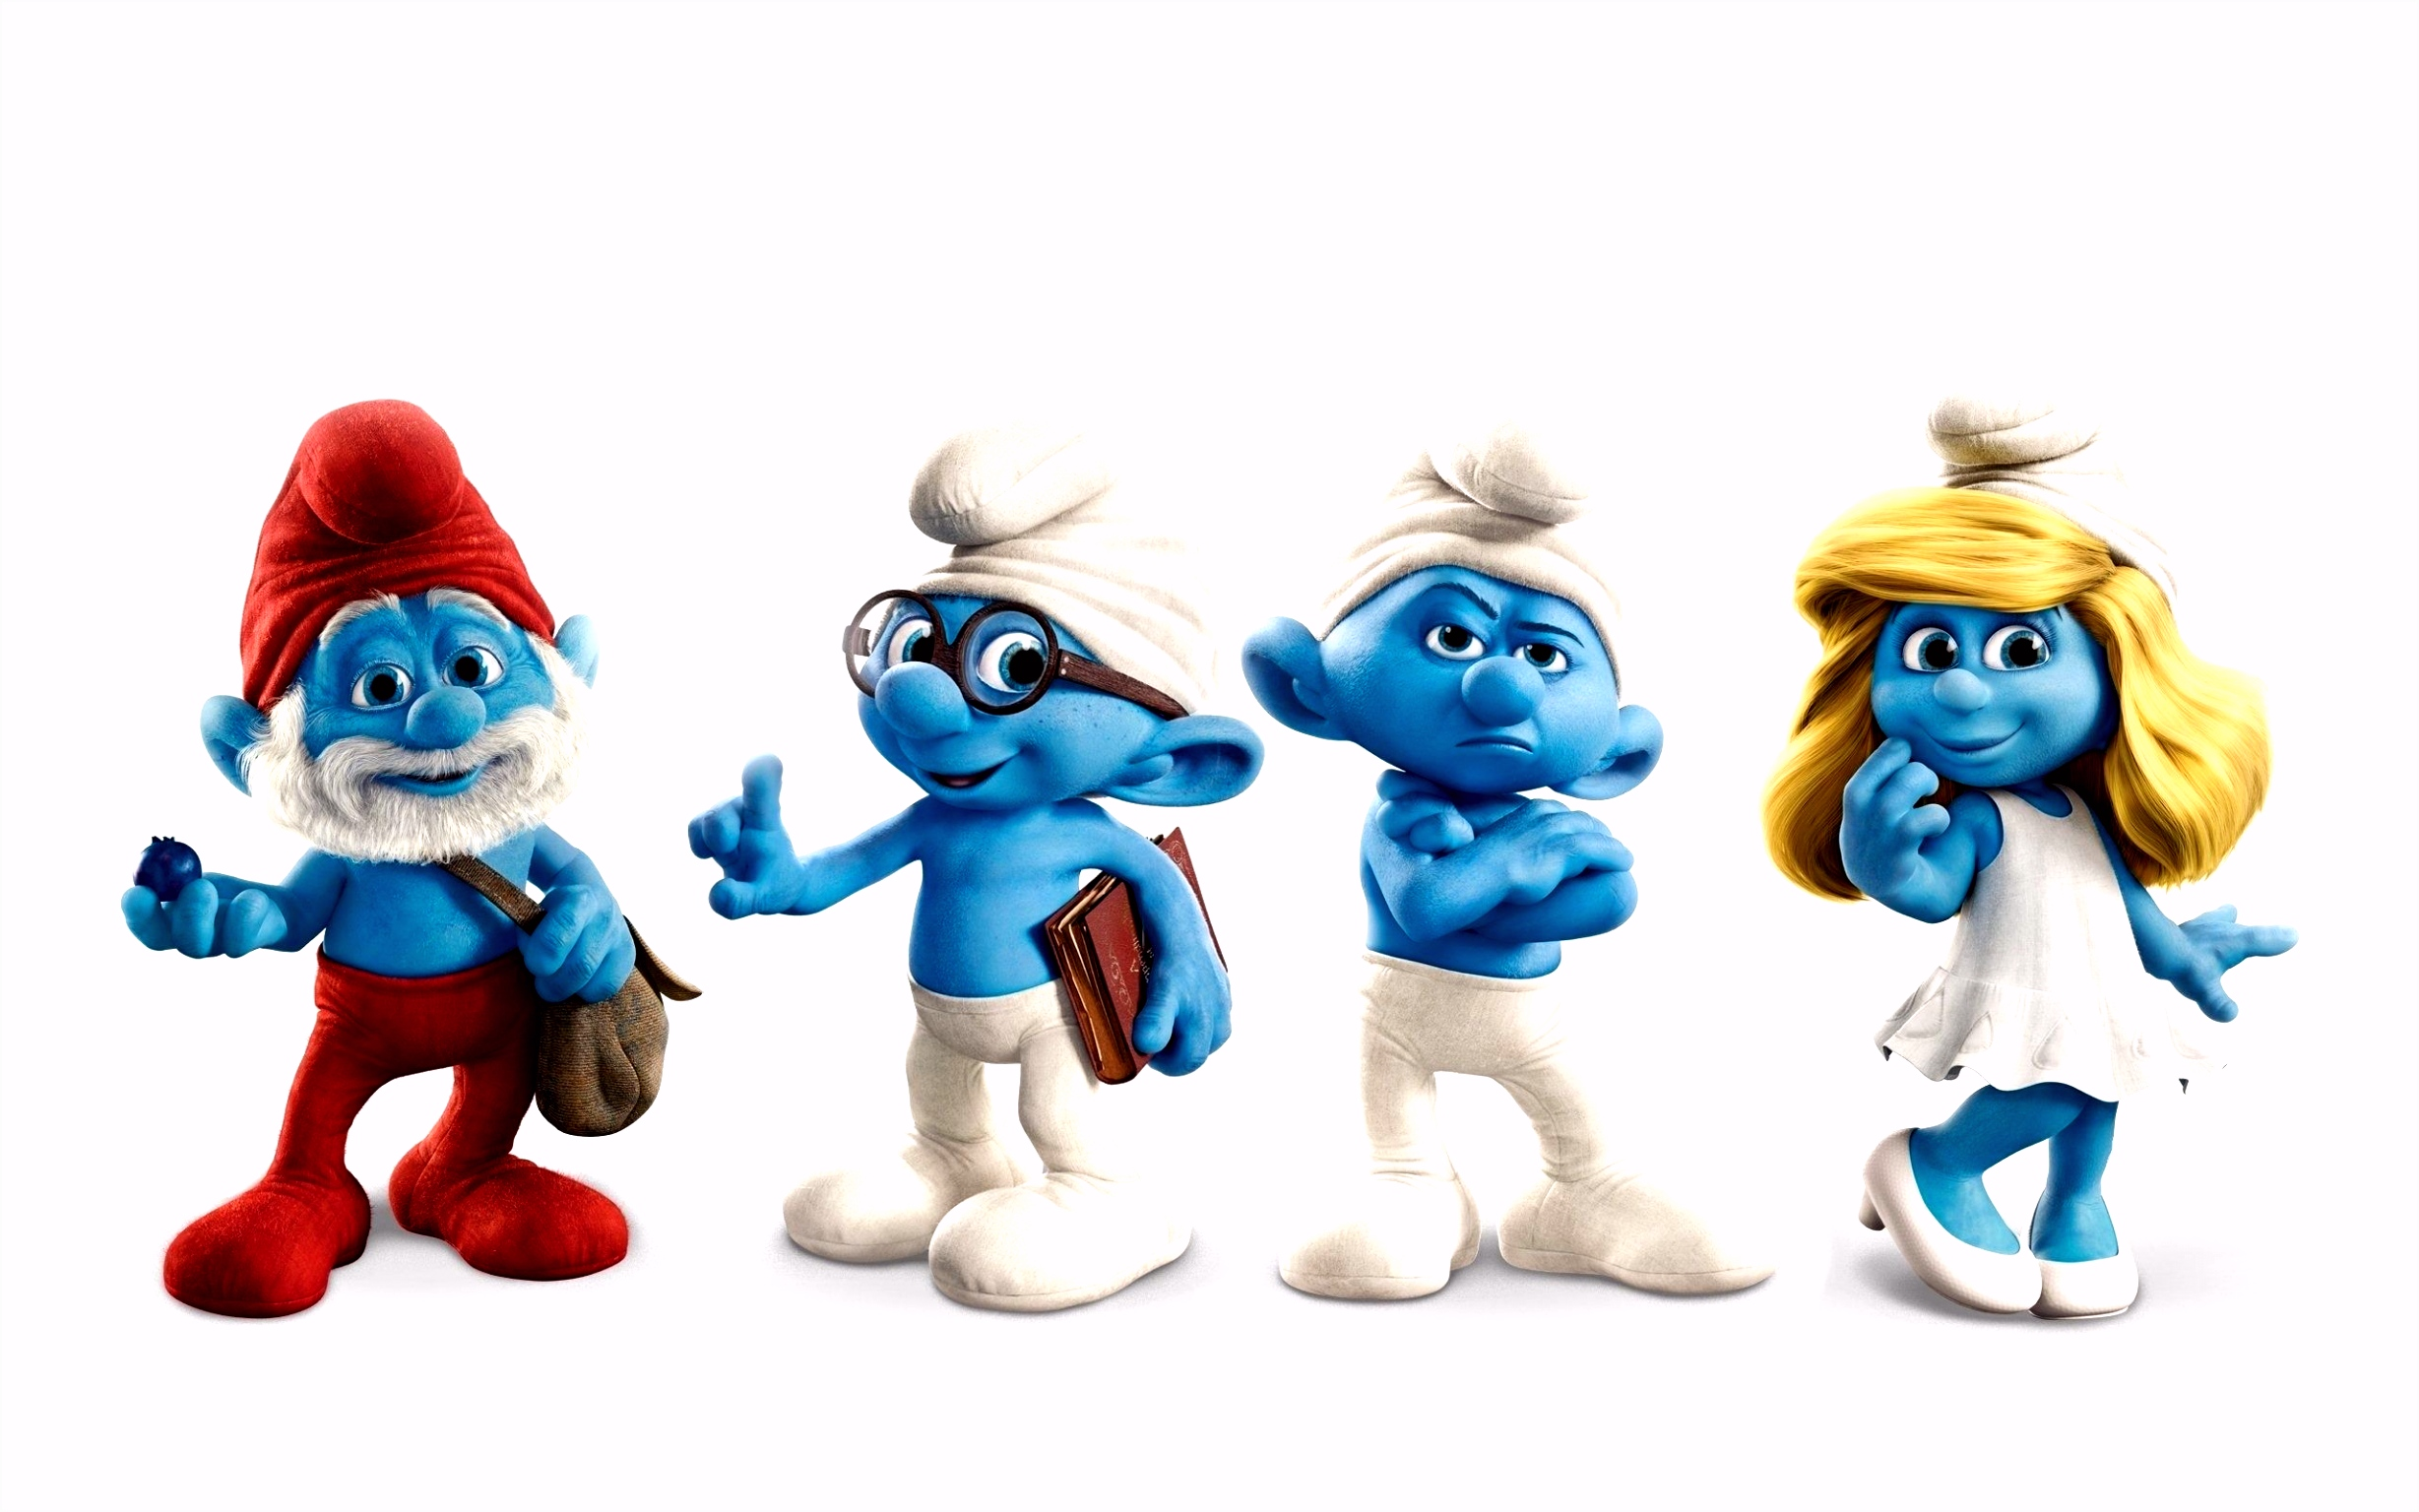 Smurfen 2 Deze Zomer In De Bioscoop Pin by Hdpicorner On Desktop Wallpapers Pinterest Q1jw56eaw3 Ymmnmsjwiu